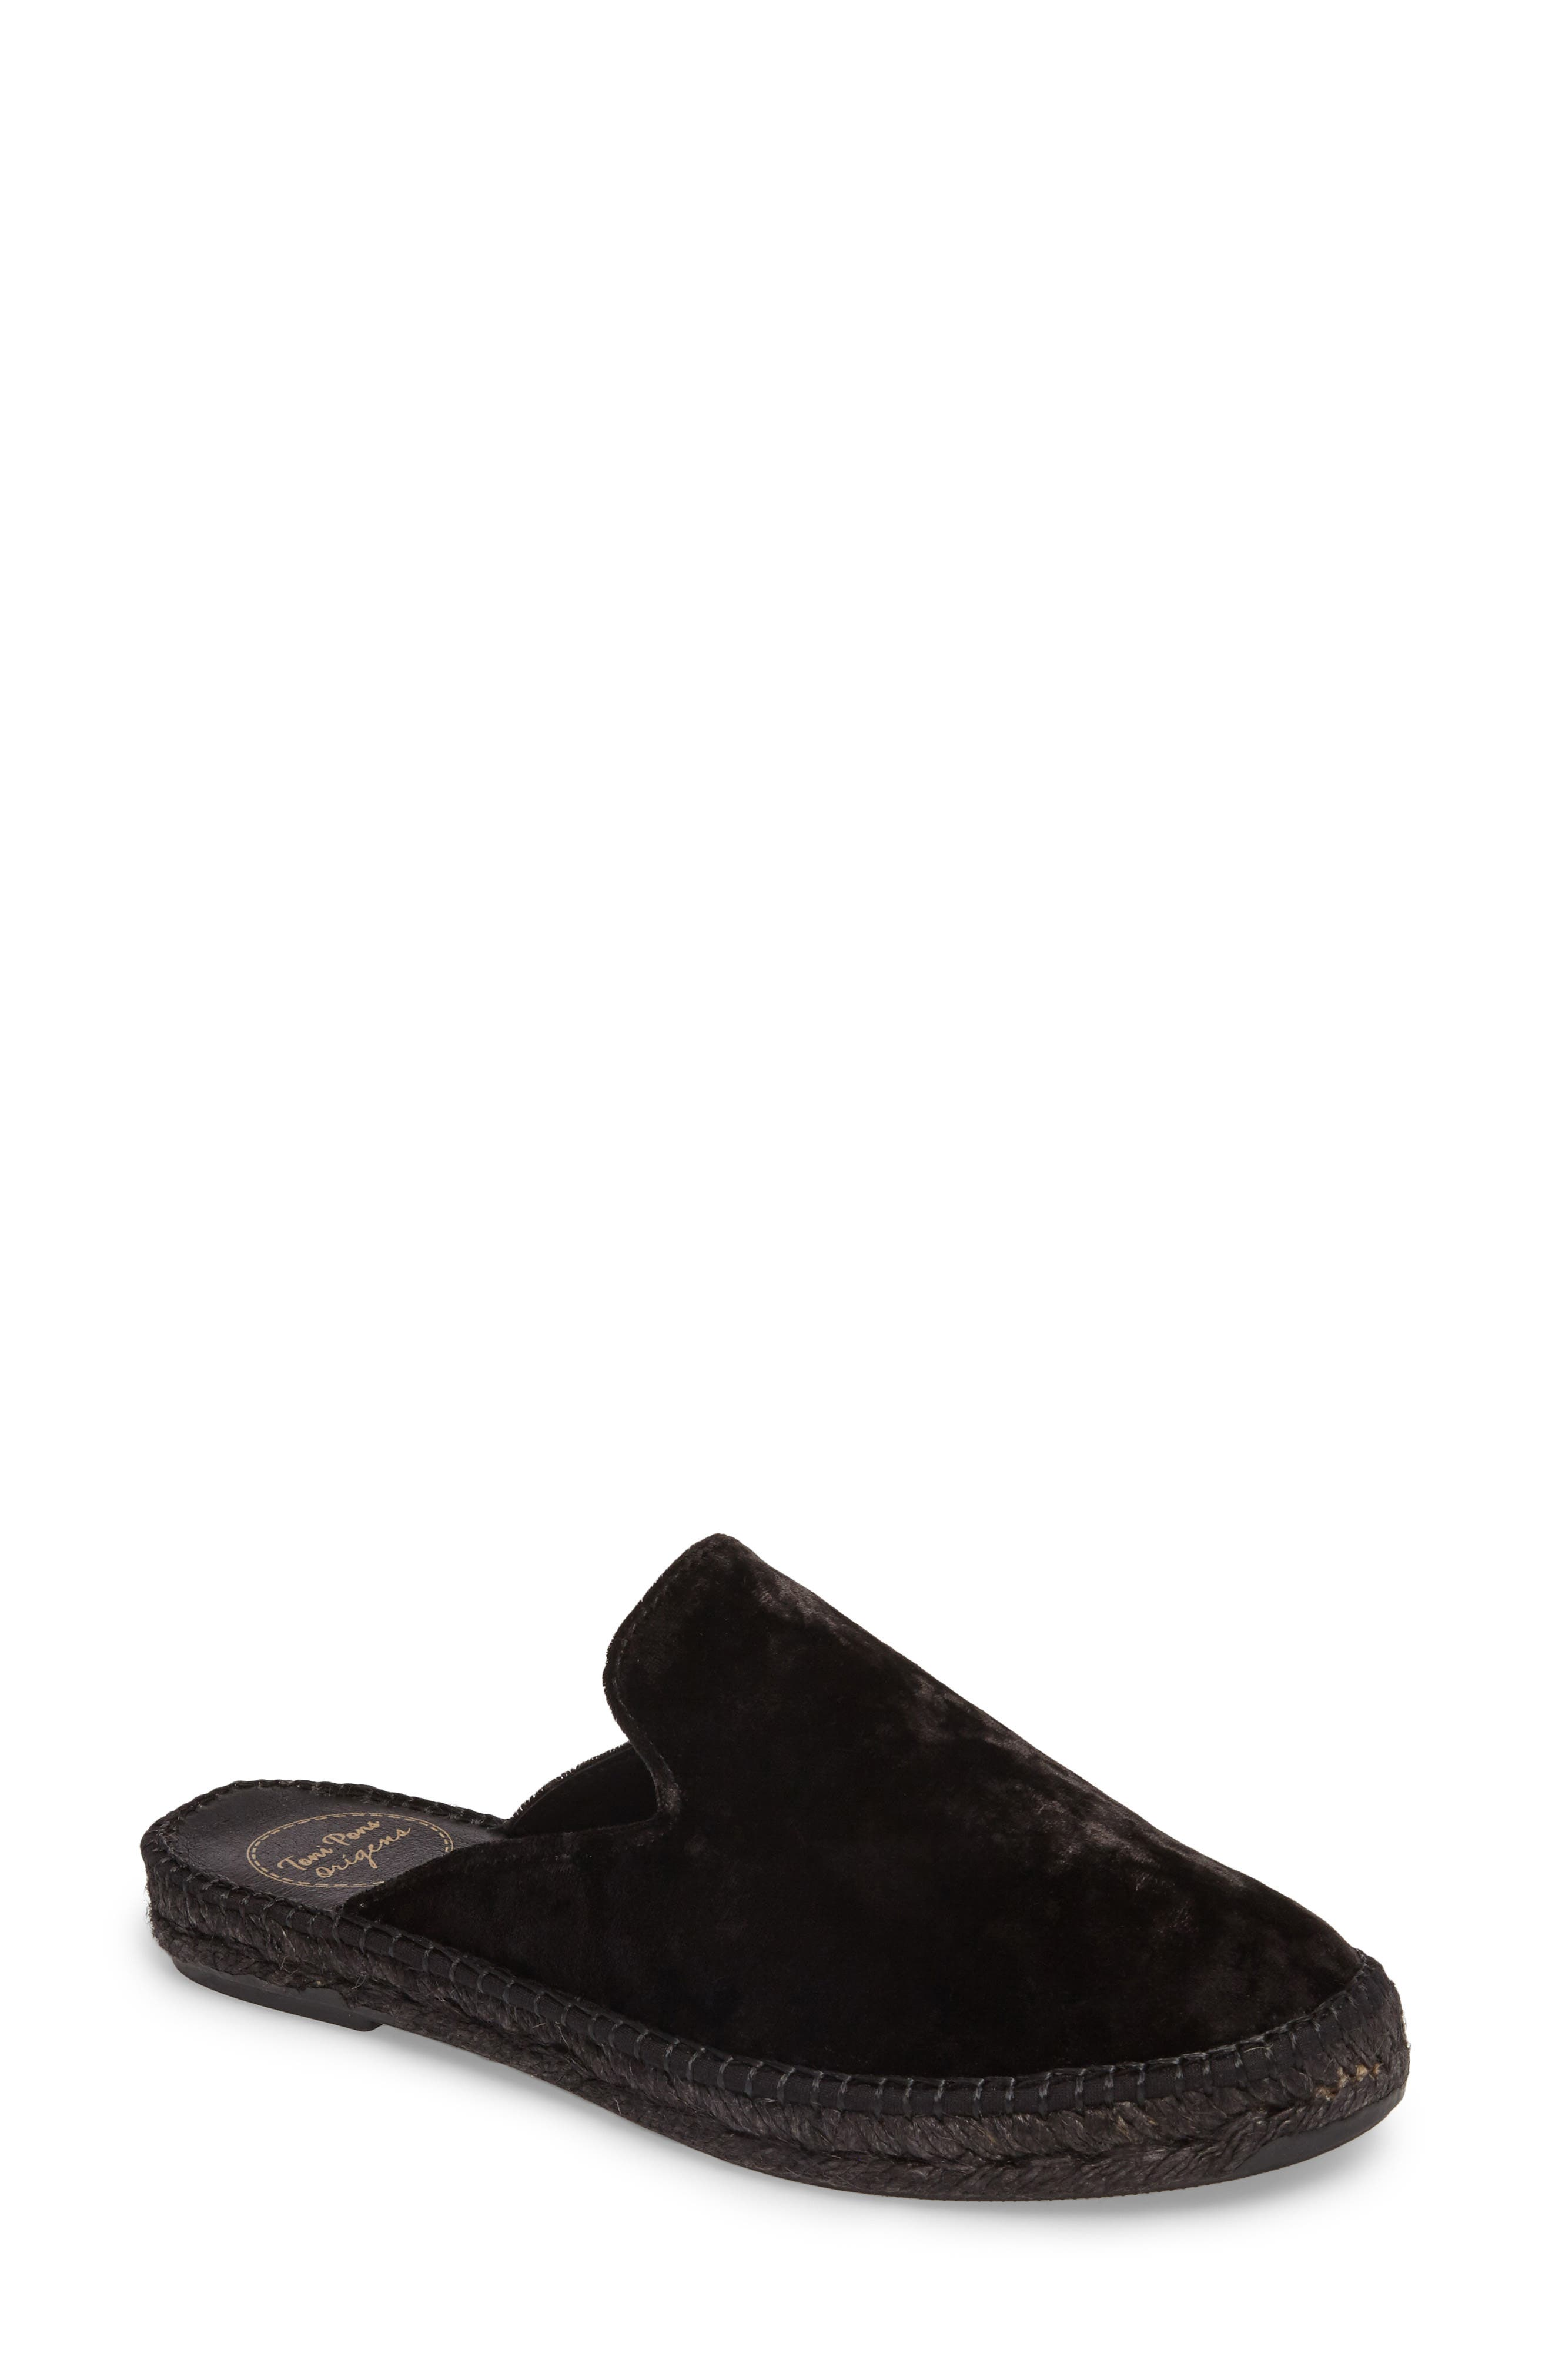 Alternate Image 1 Selected - Toni Pons Malmo Espadrille Slipper Mule (Women)